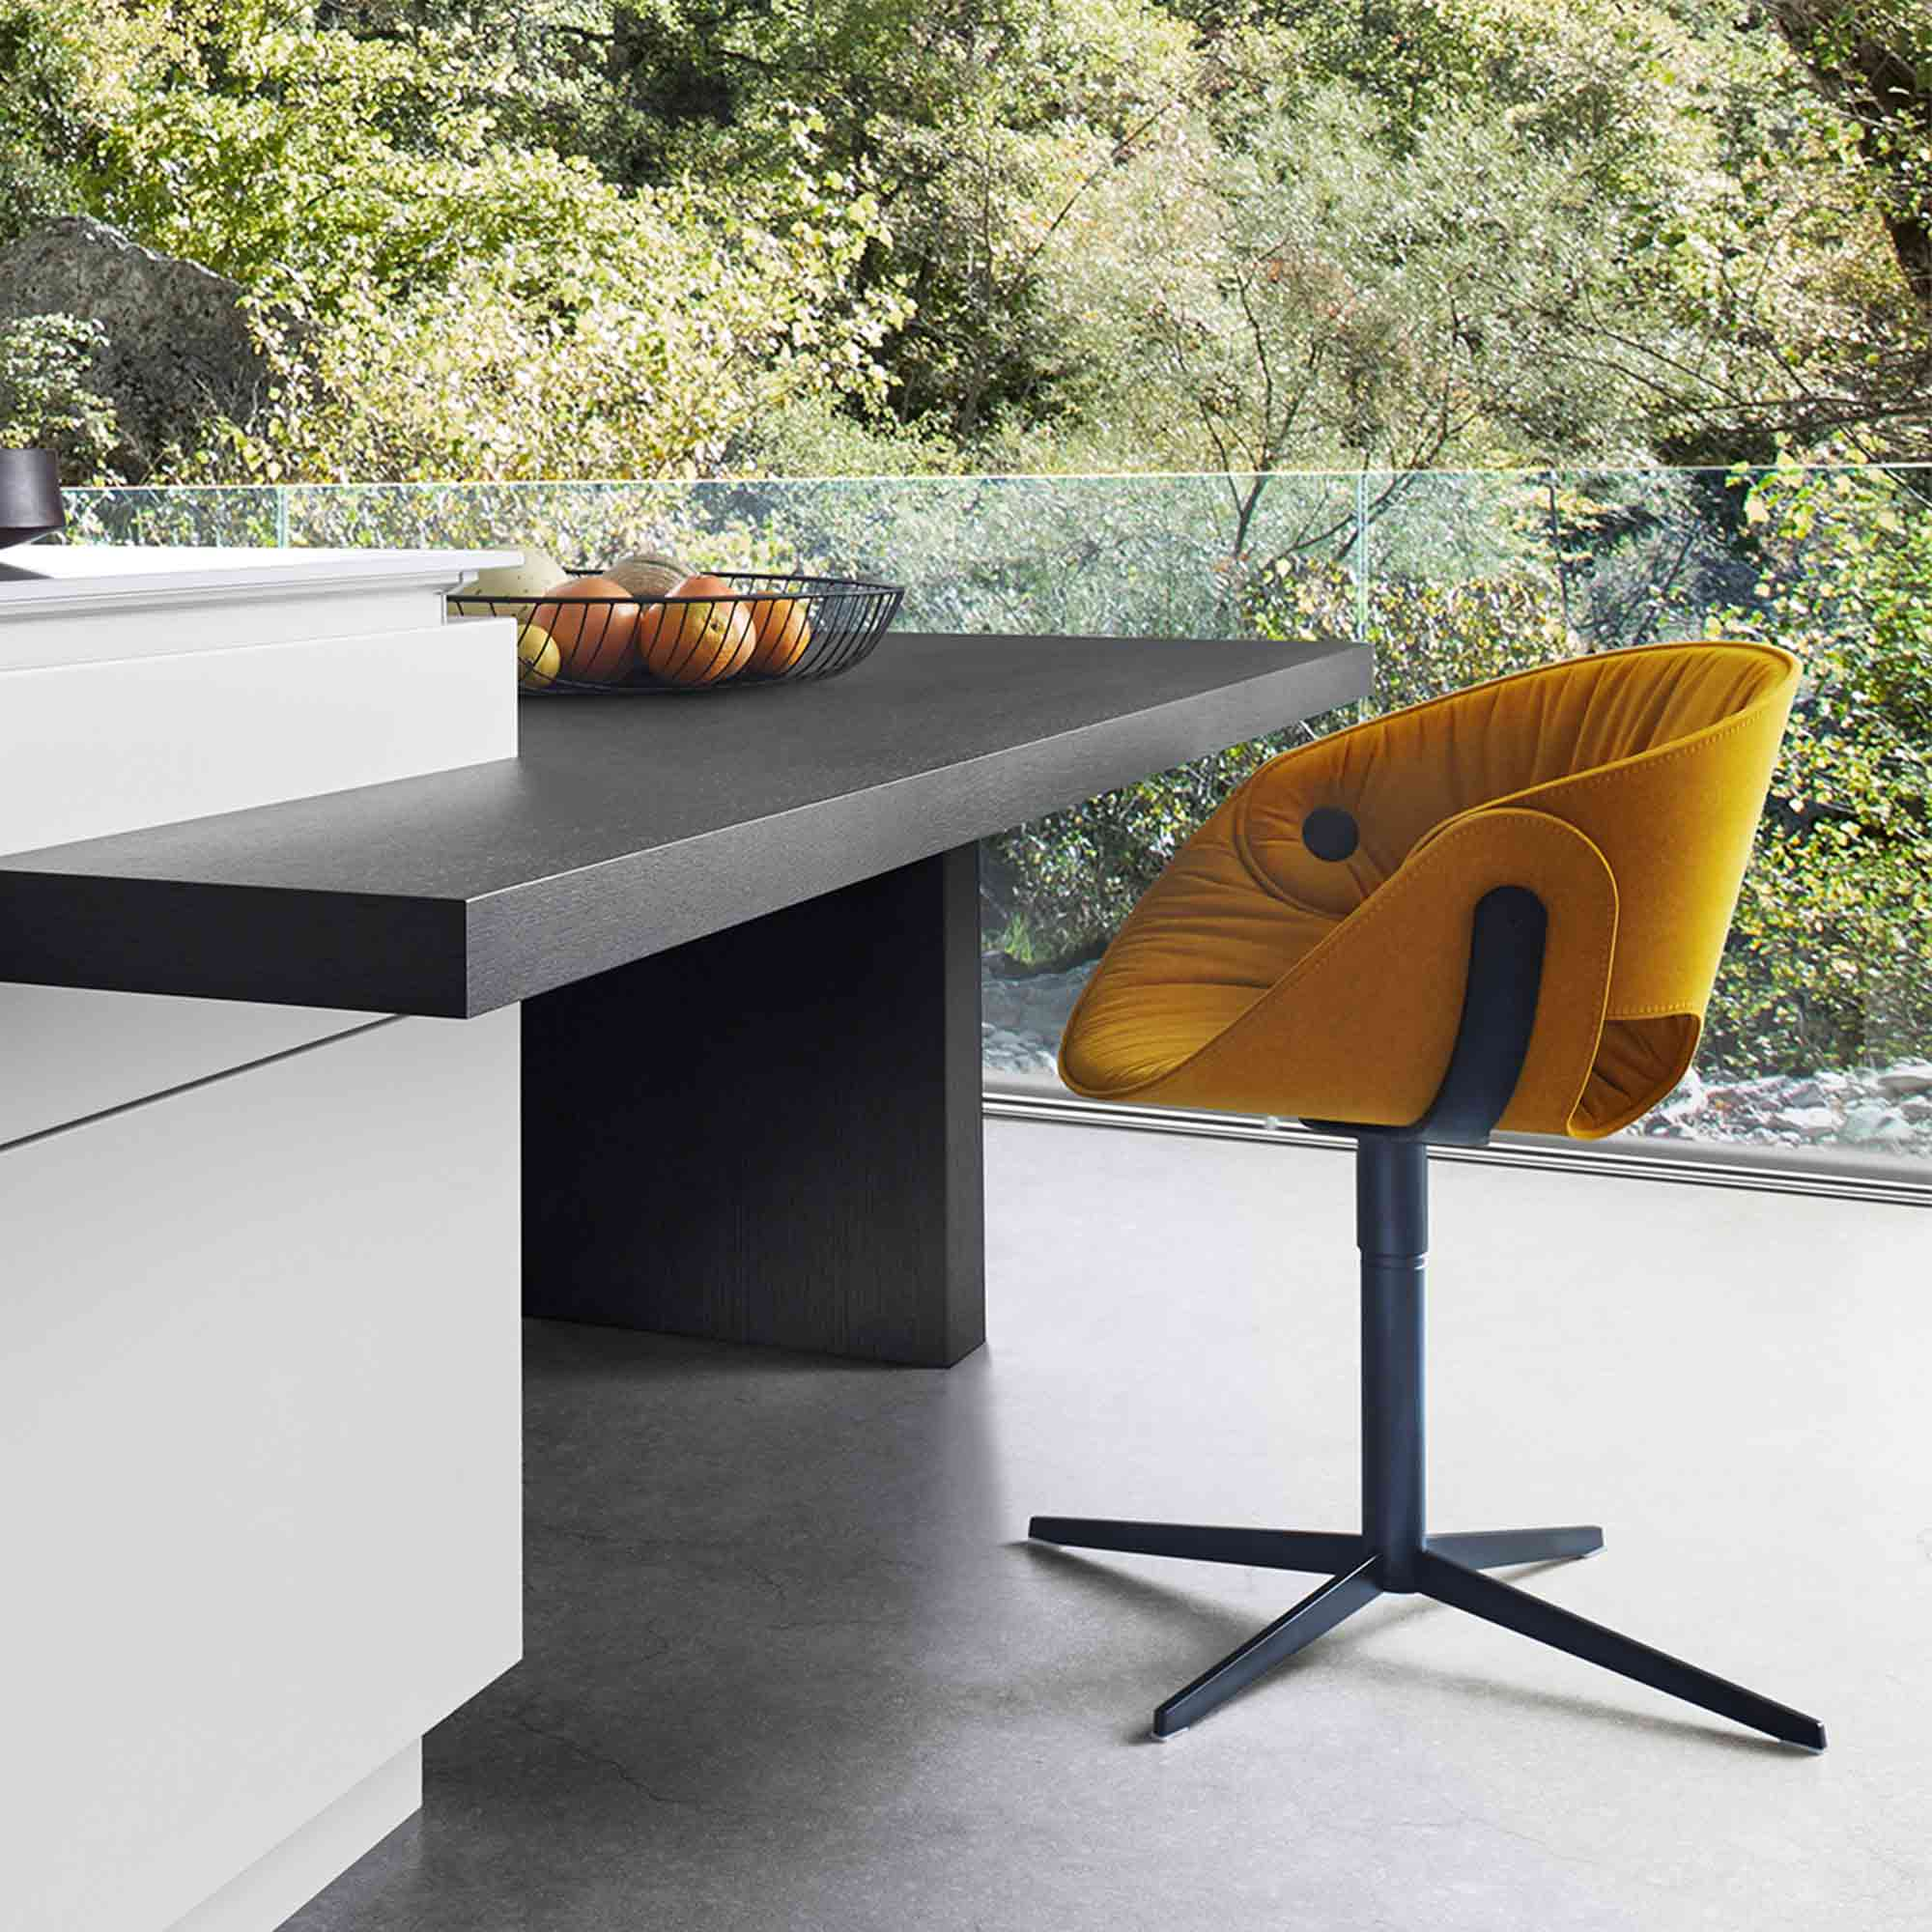 Designer dining area with orange chair by Hubble